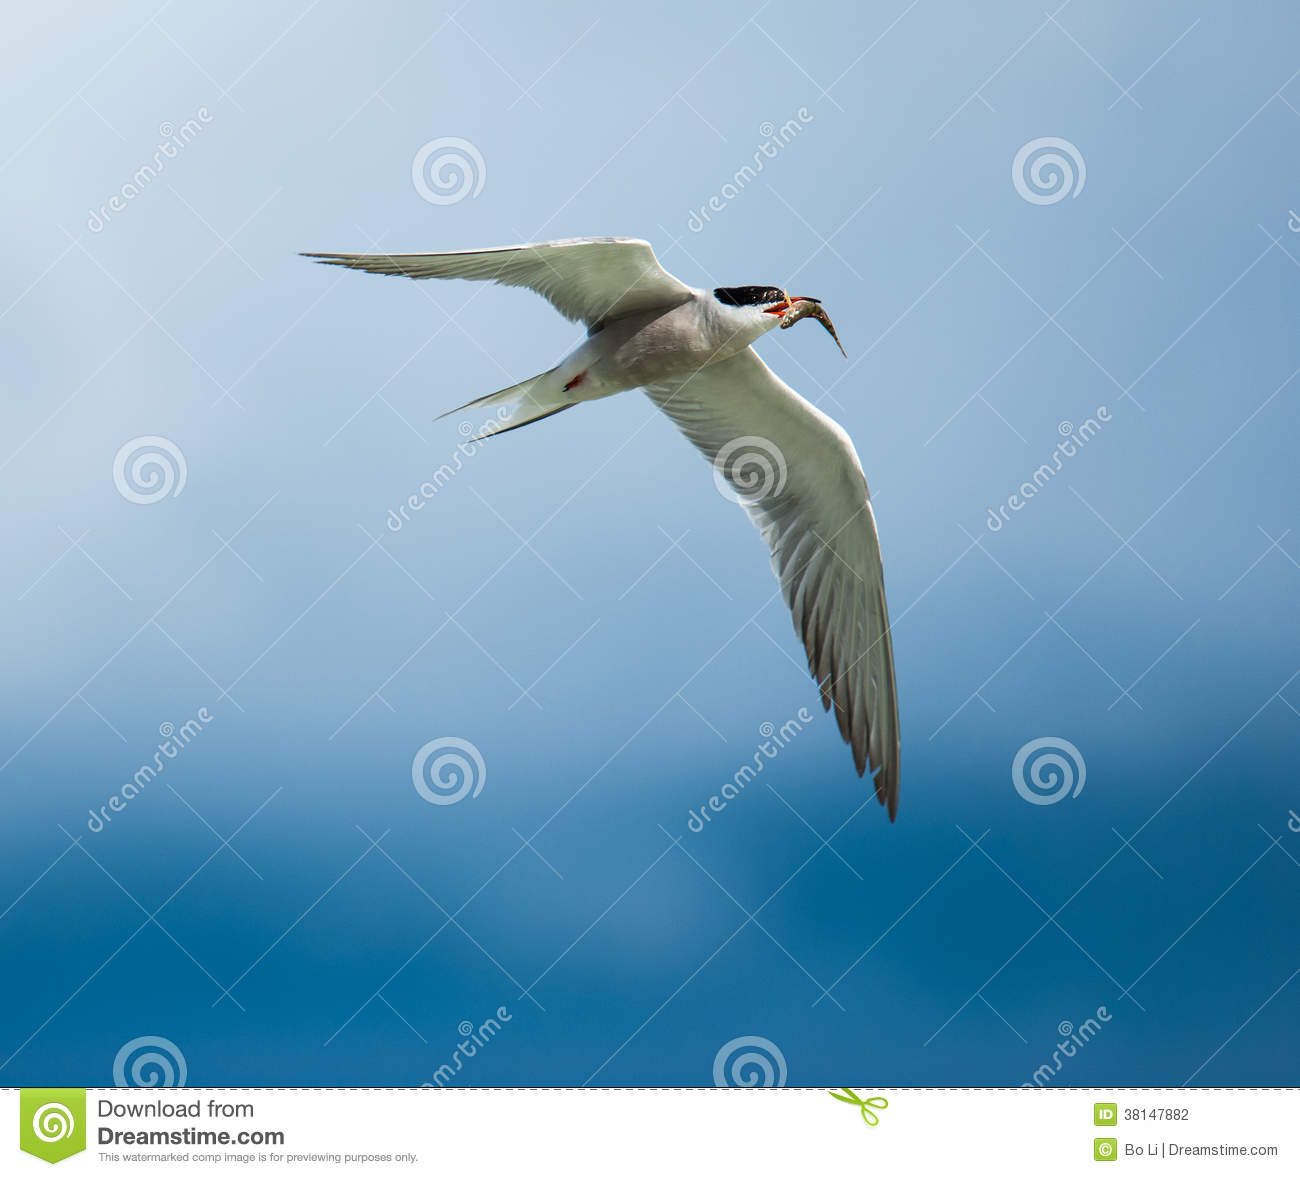 Stock Photography Flying Bird Image38147882